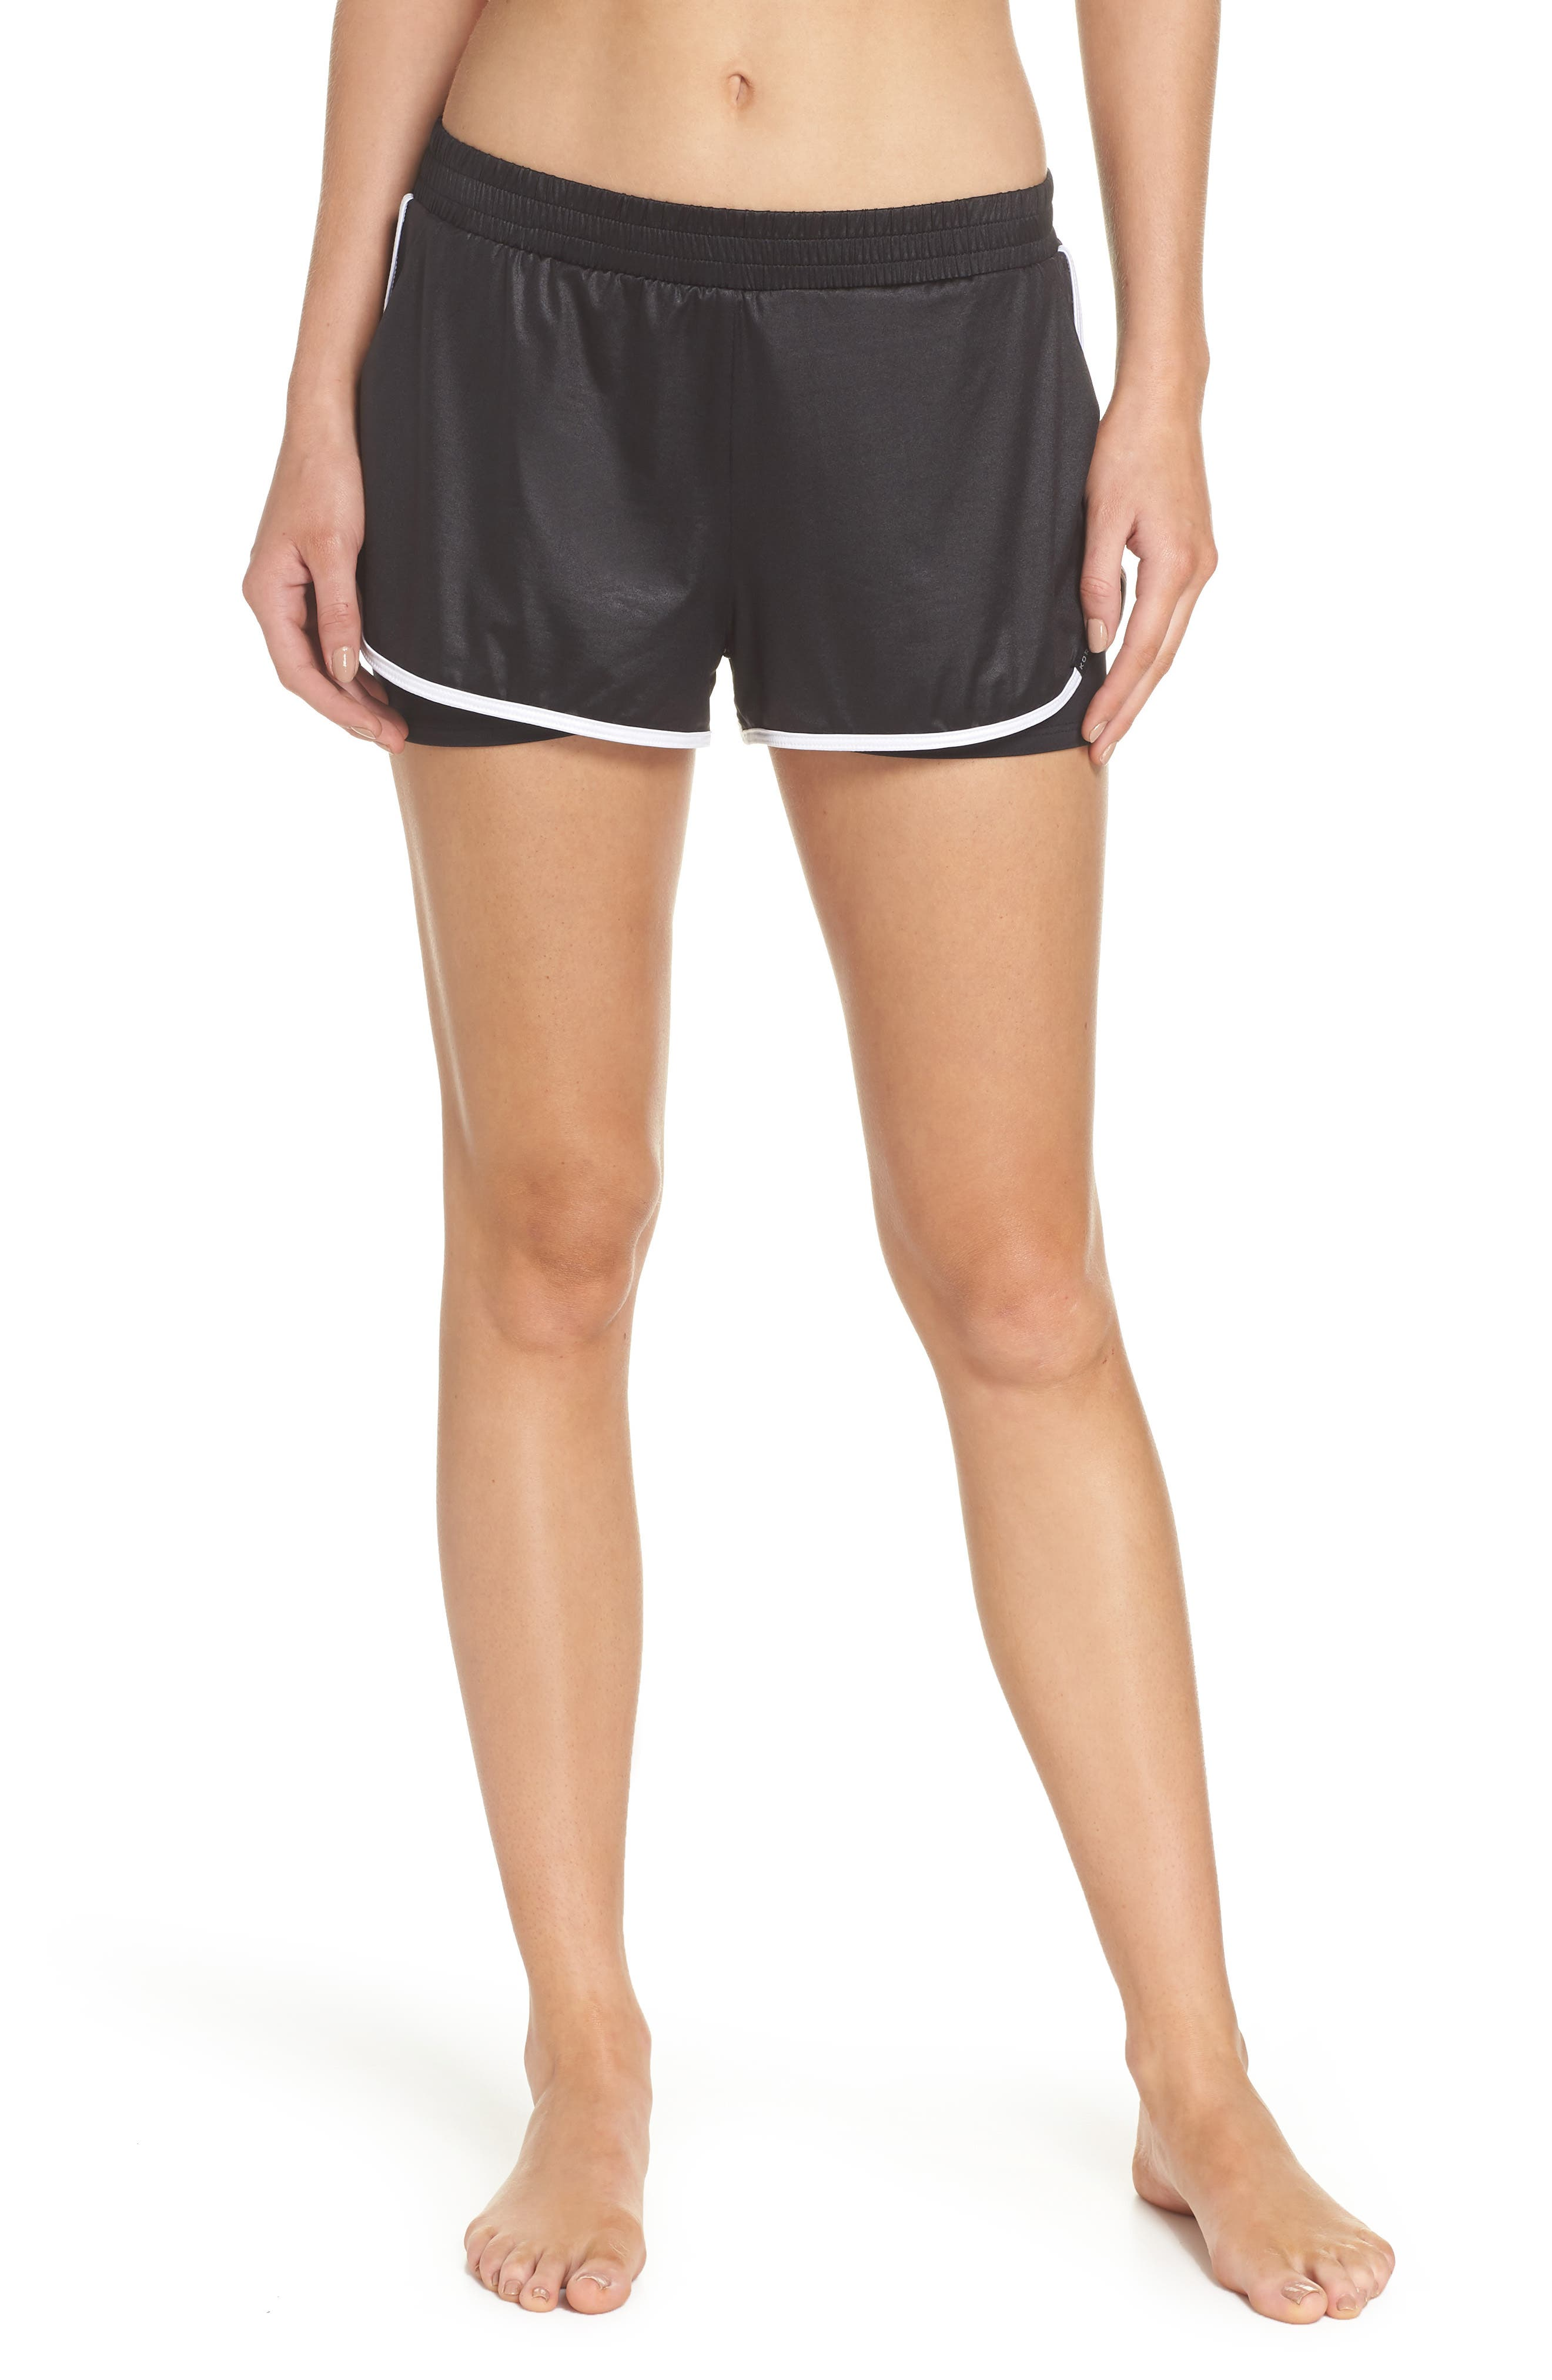 Scout Gym Shorts,                         Main,                         color, Black/ White